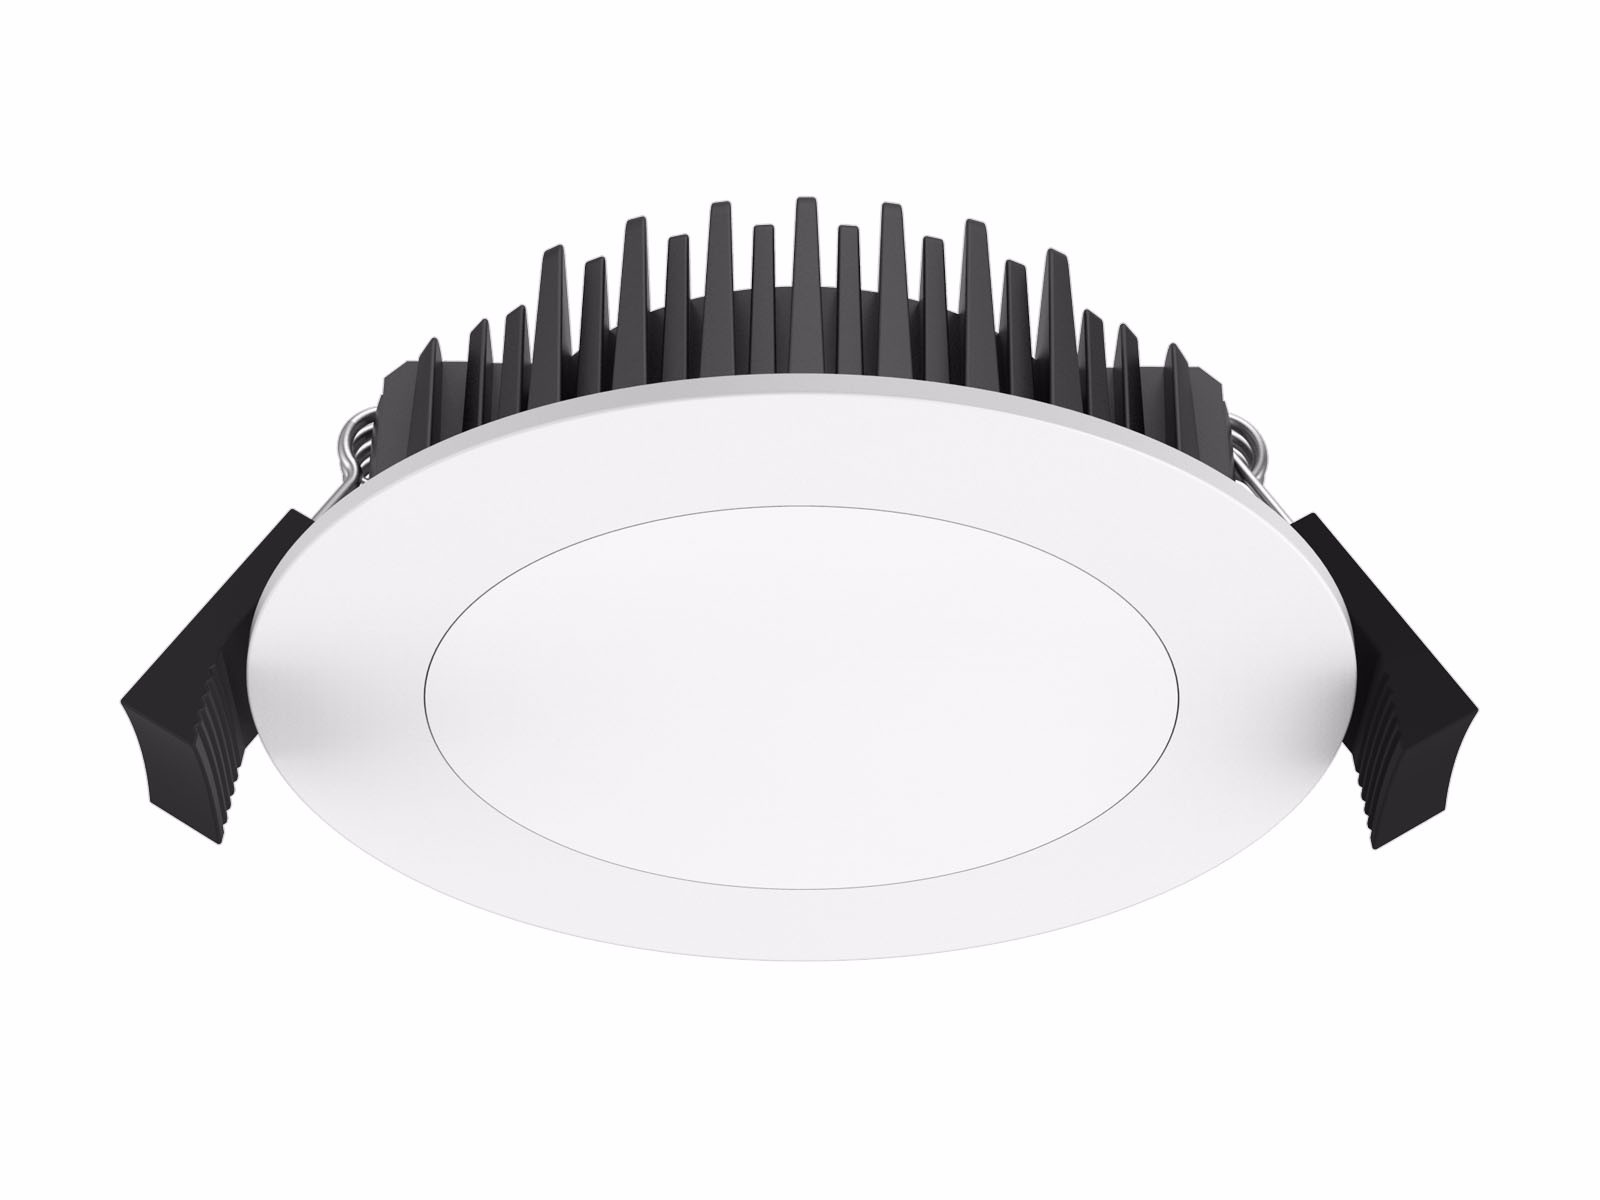 CL22 LED Downlight